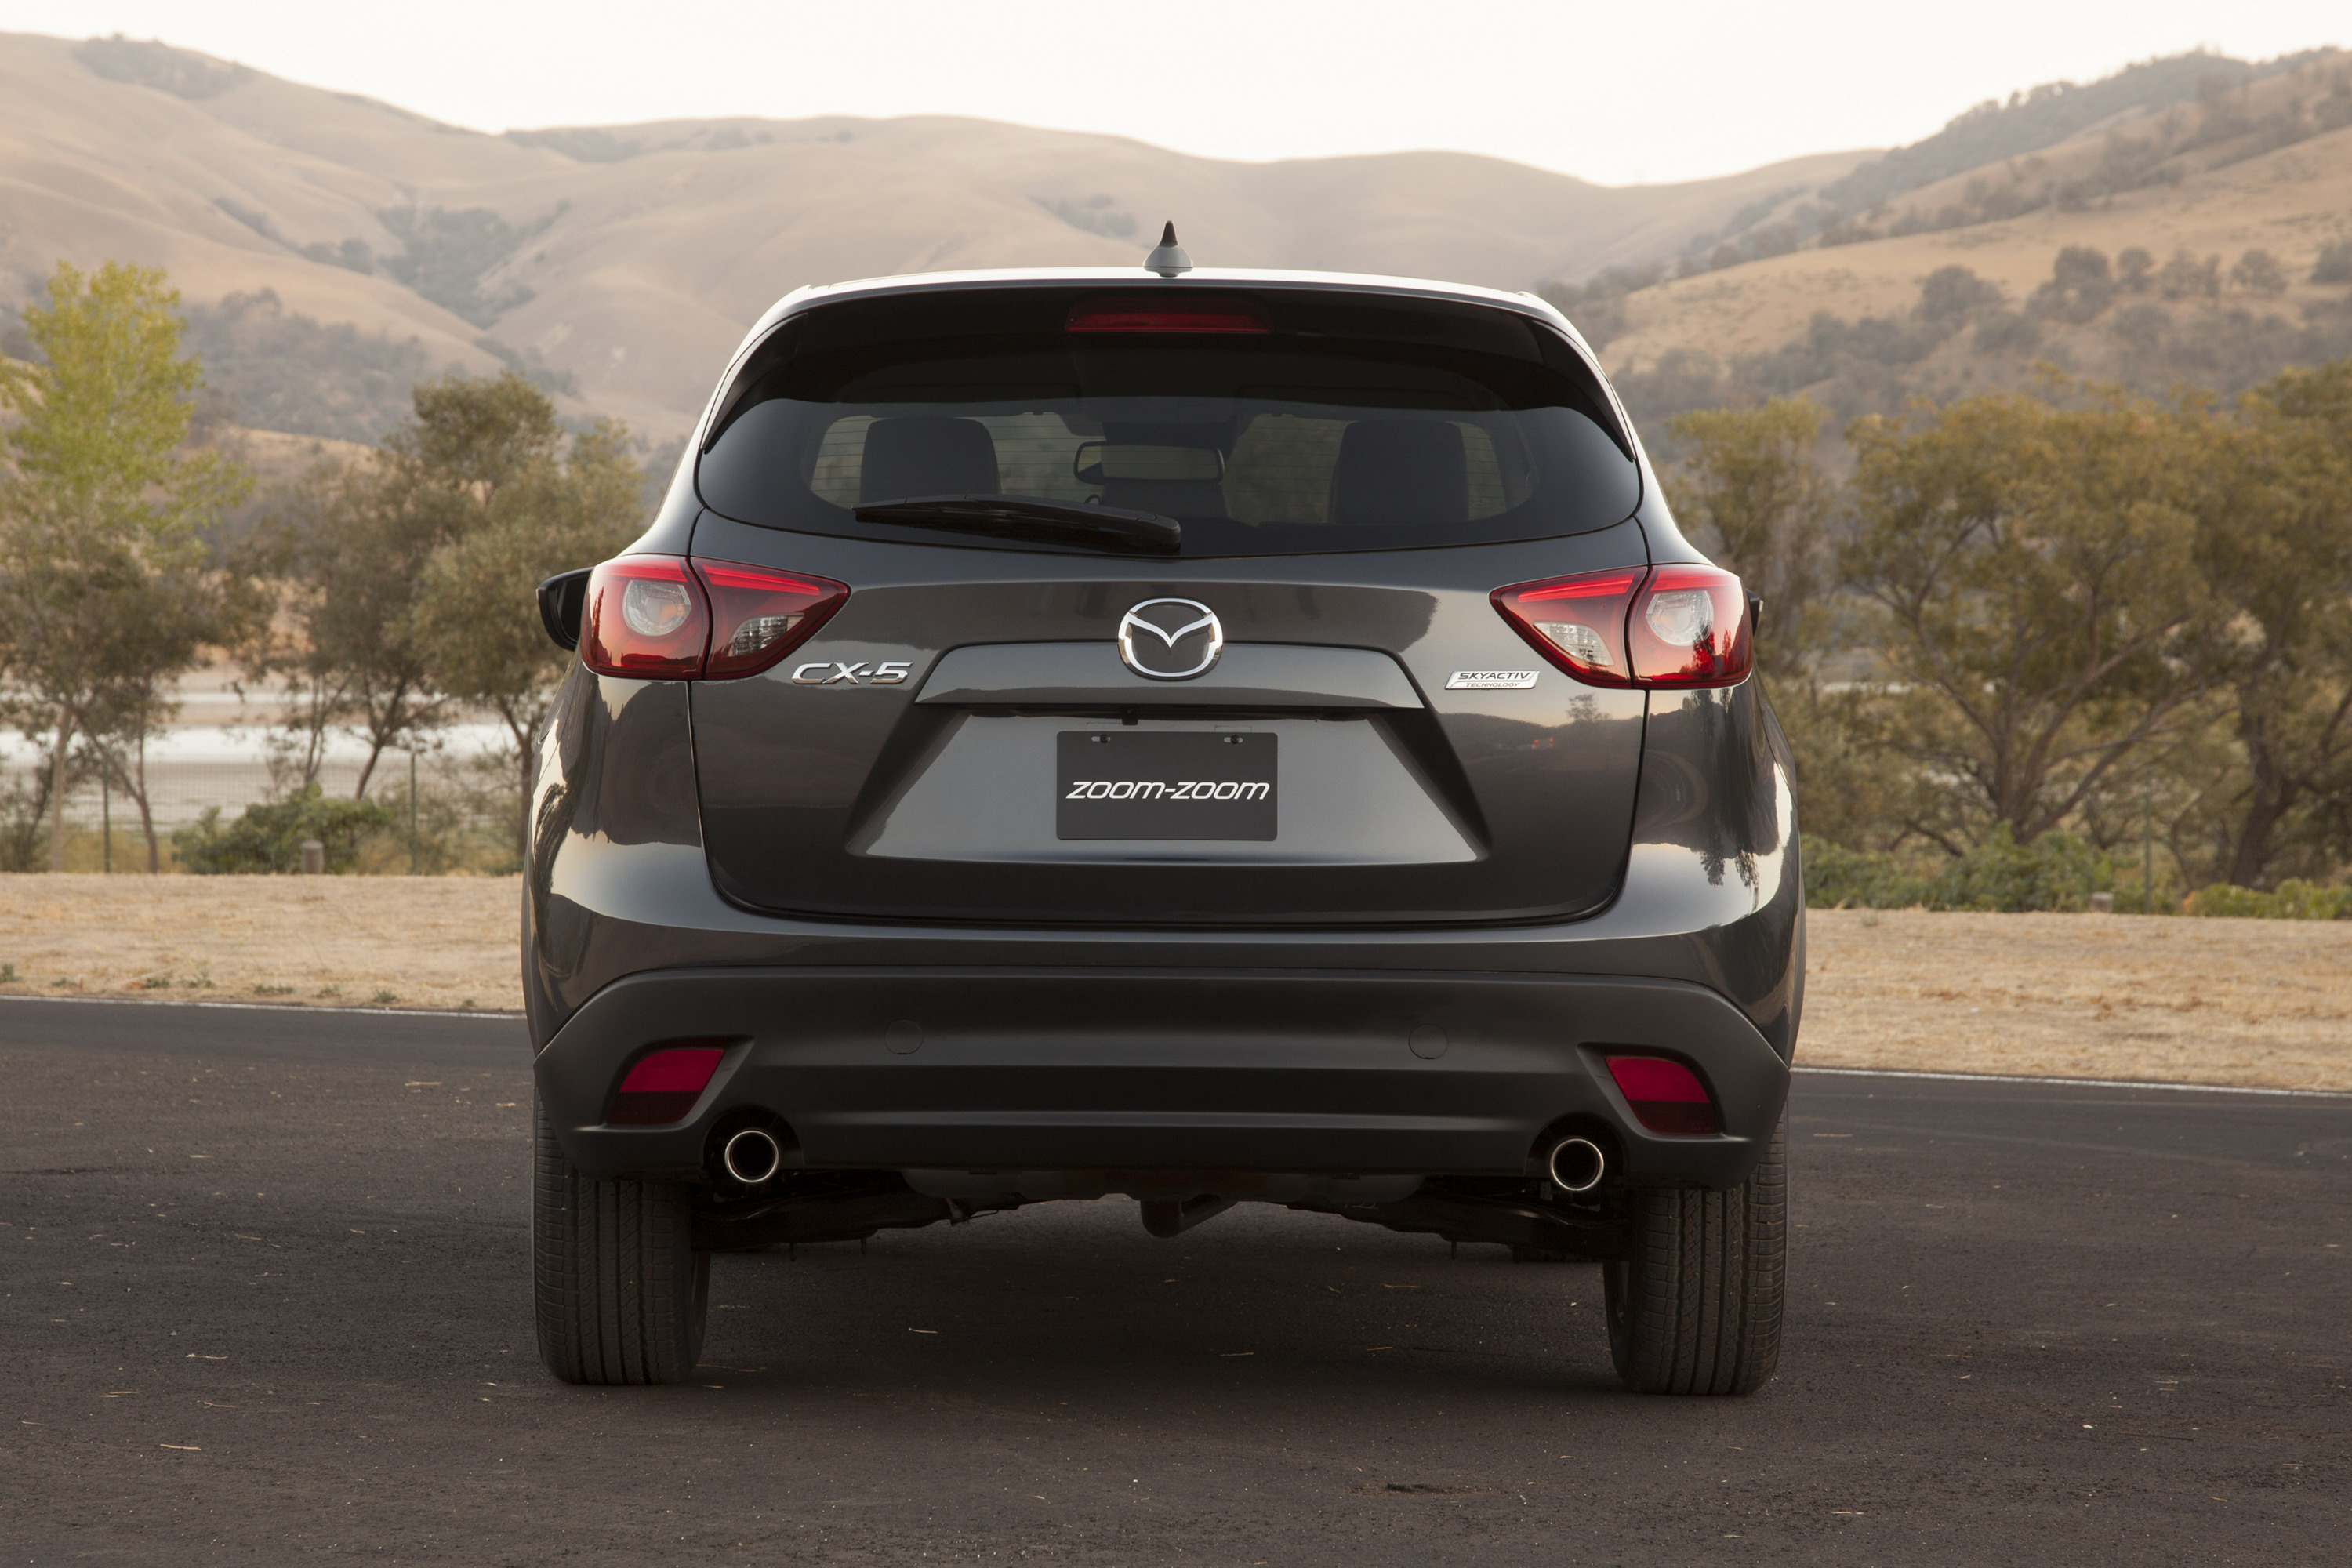 mazda chapter time the it on to being last tricks sporty send grand some dark img is touring final s and over red that element design kodo side crossover rover awd with cx new